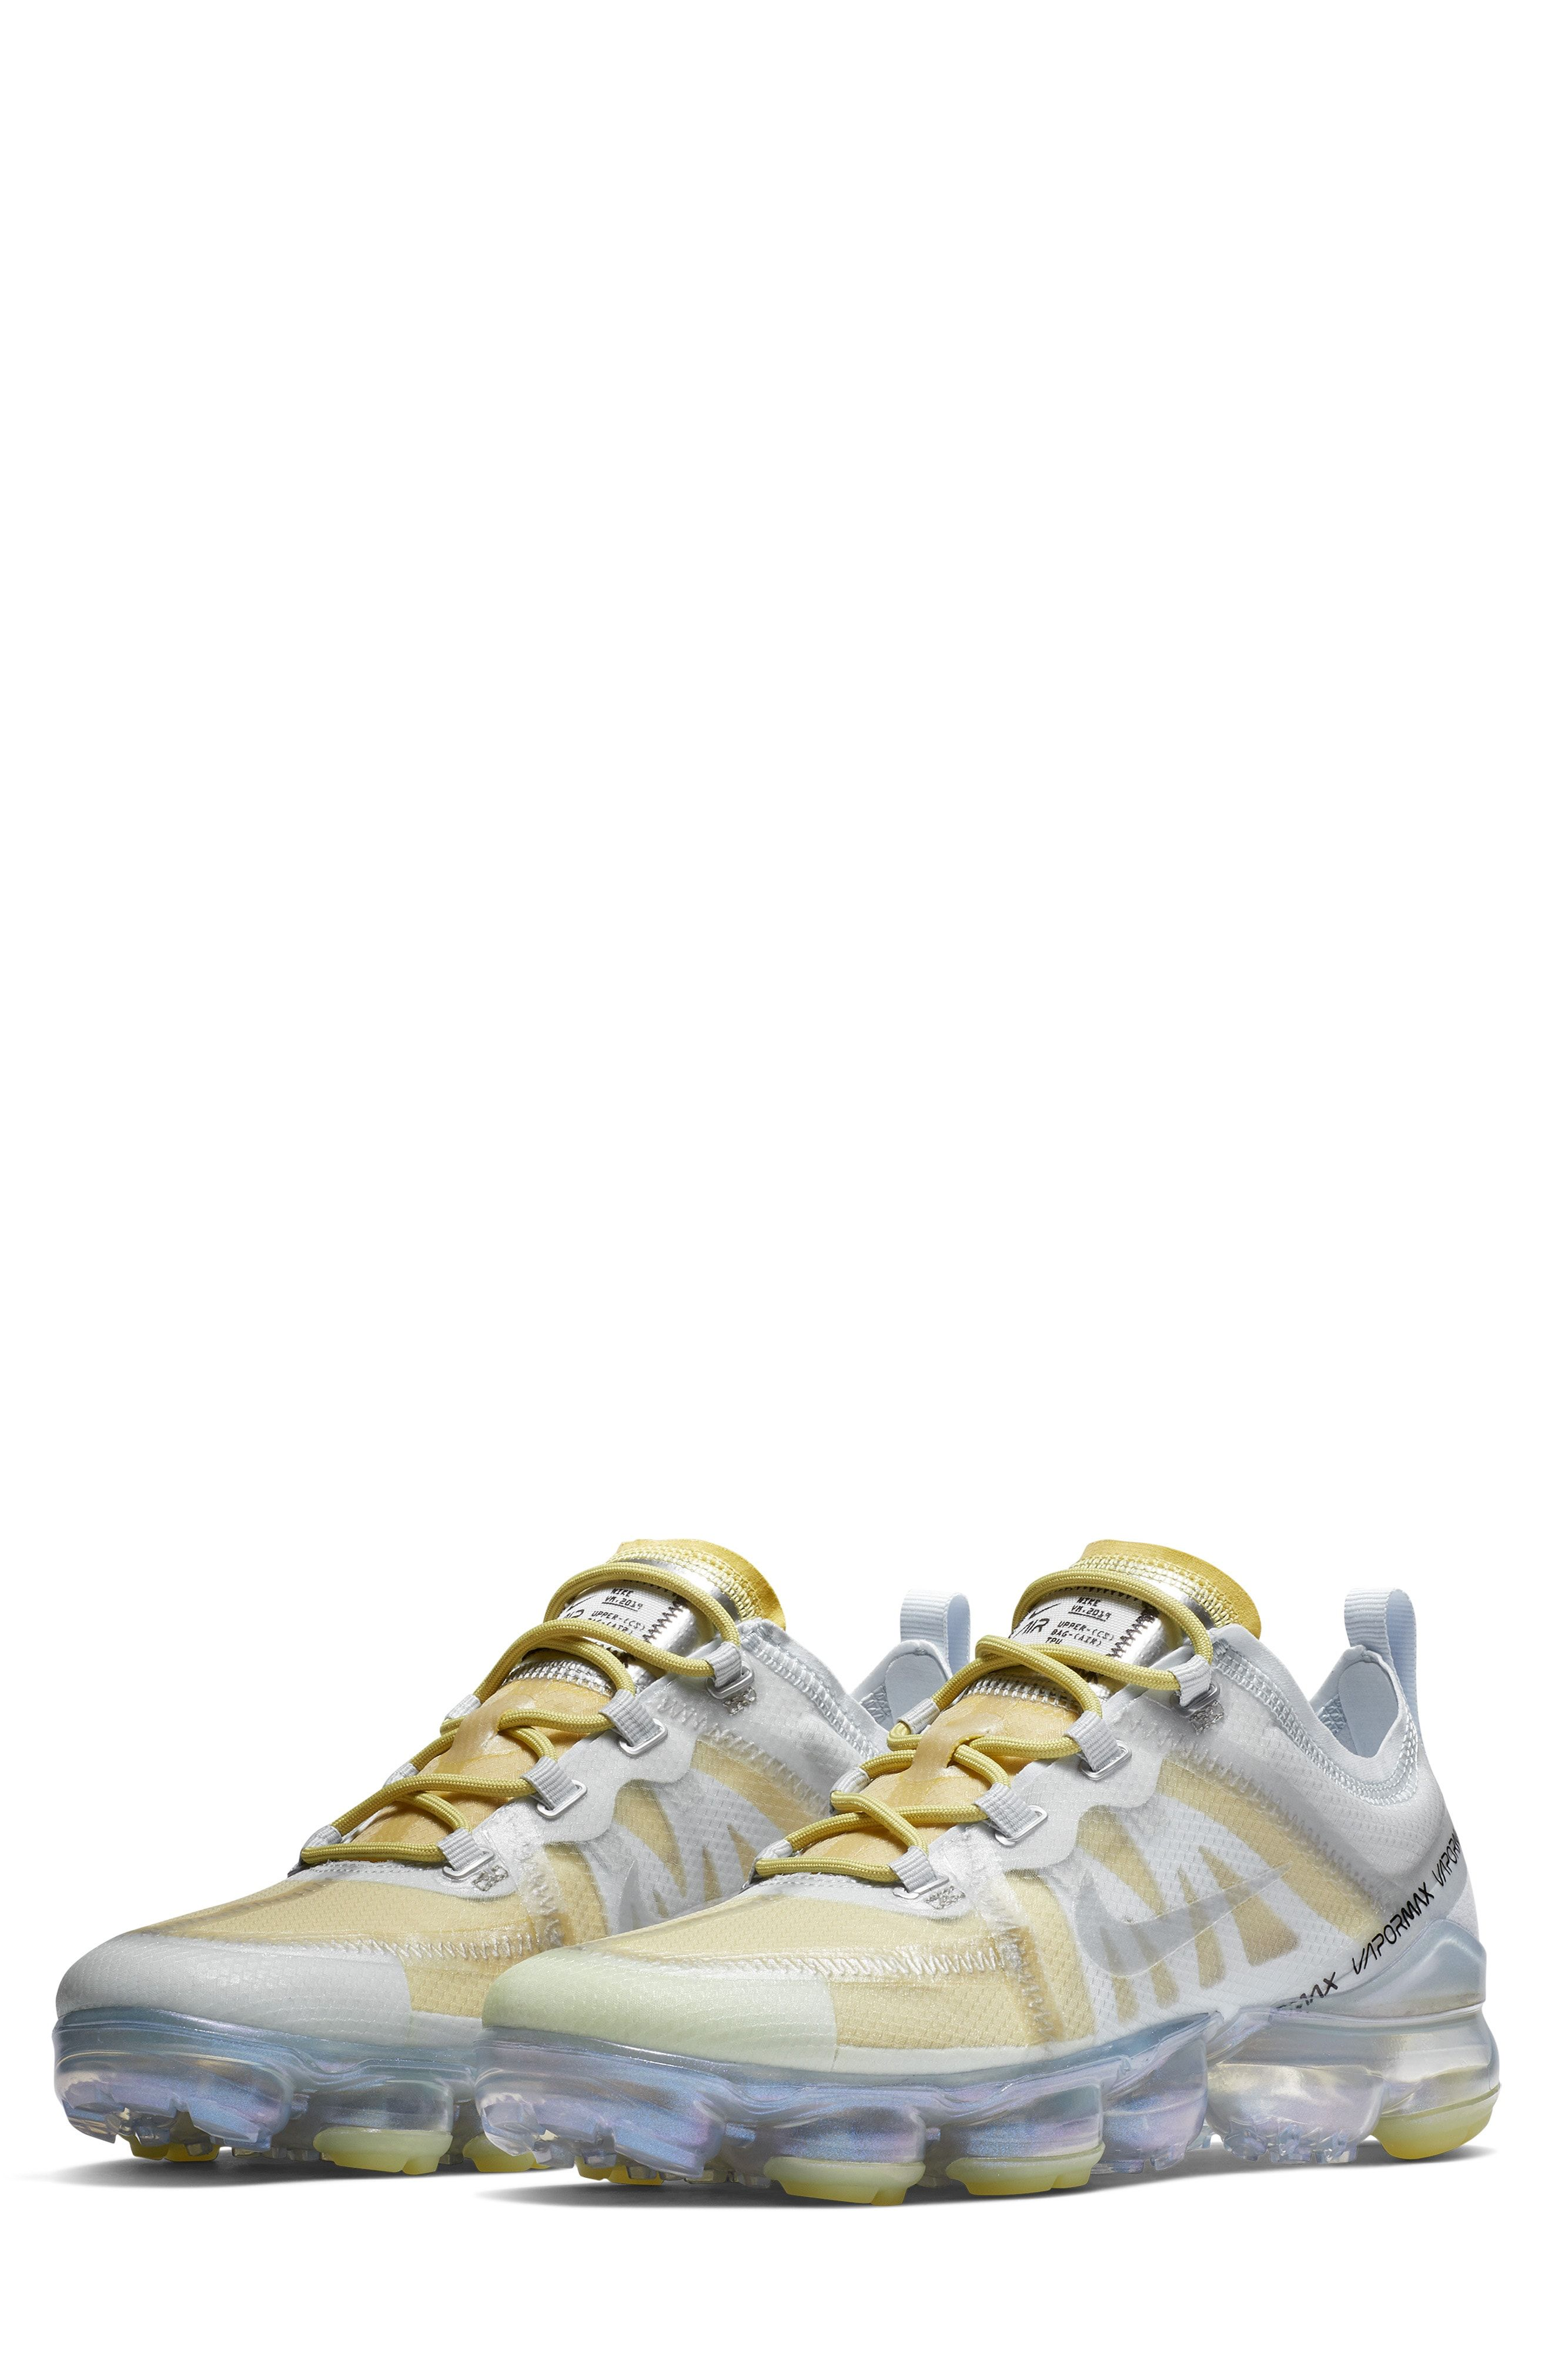 Nike Air VaporMax 2019 Premium Running Shoe available at